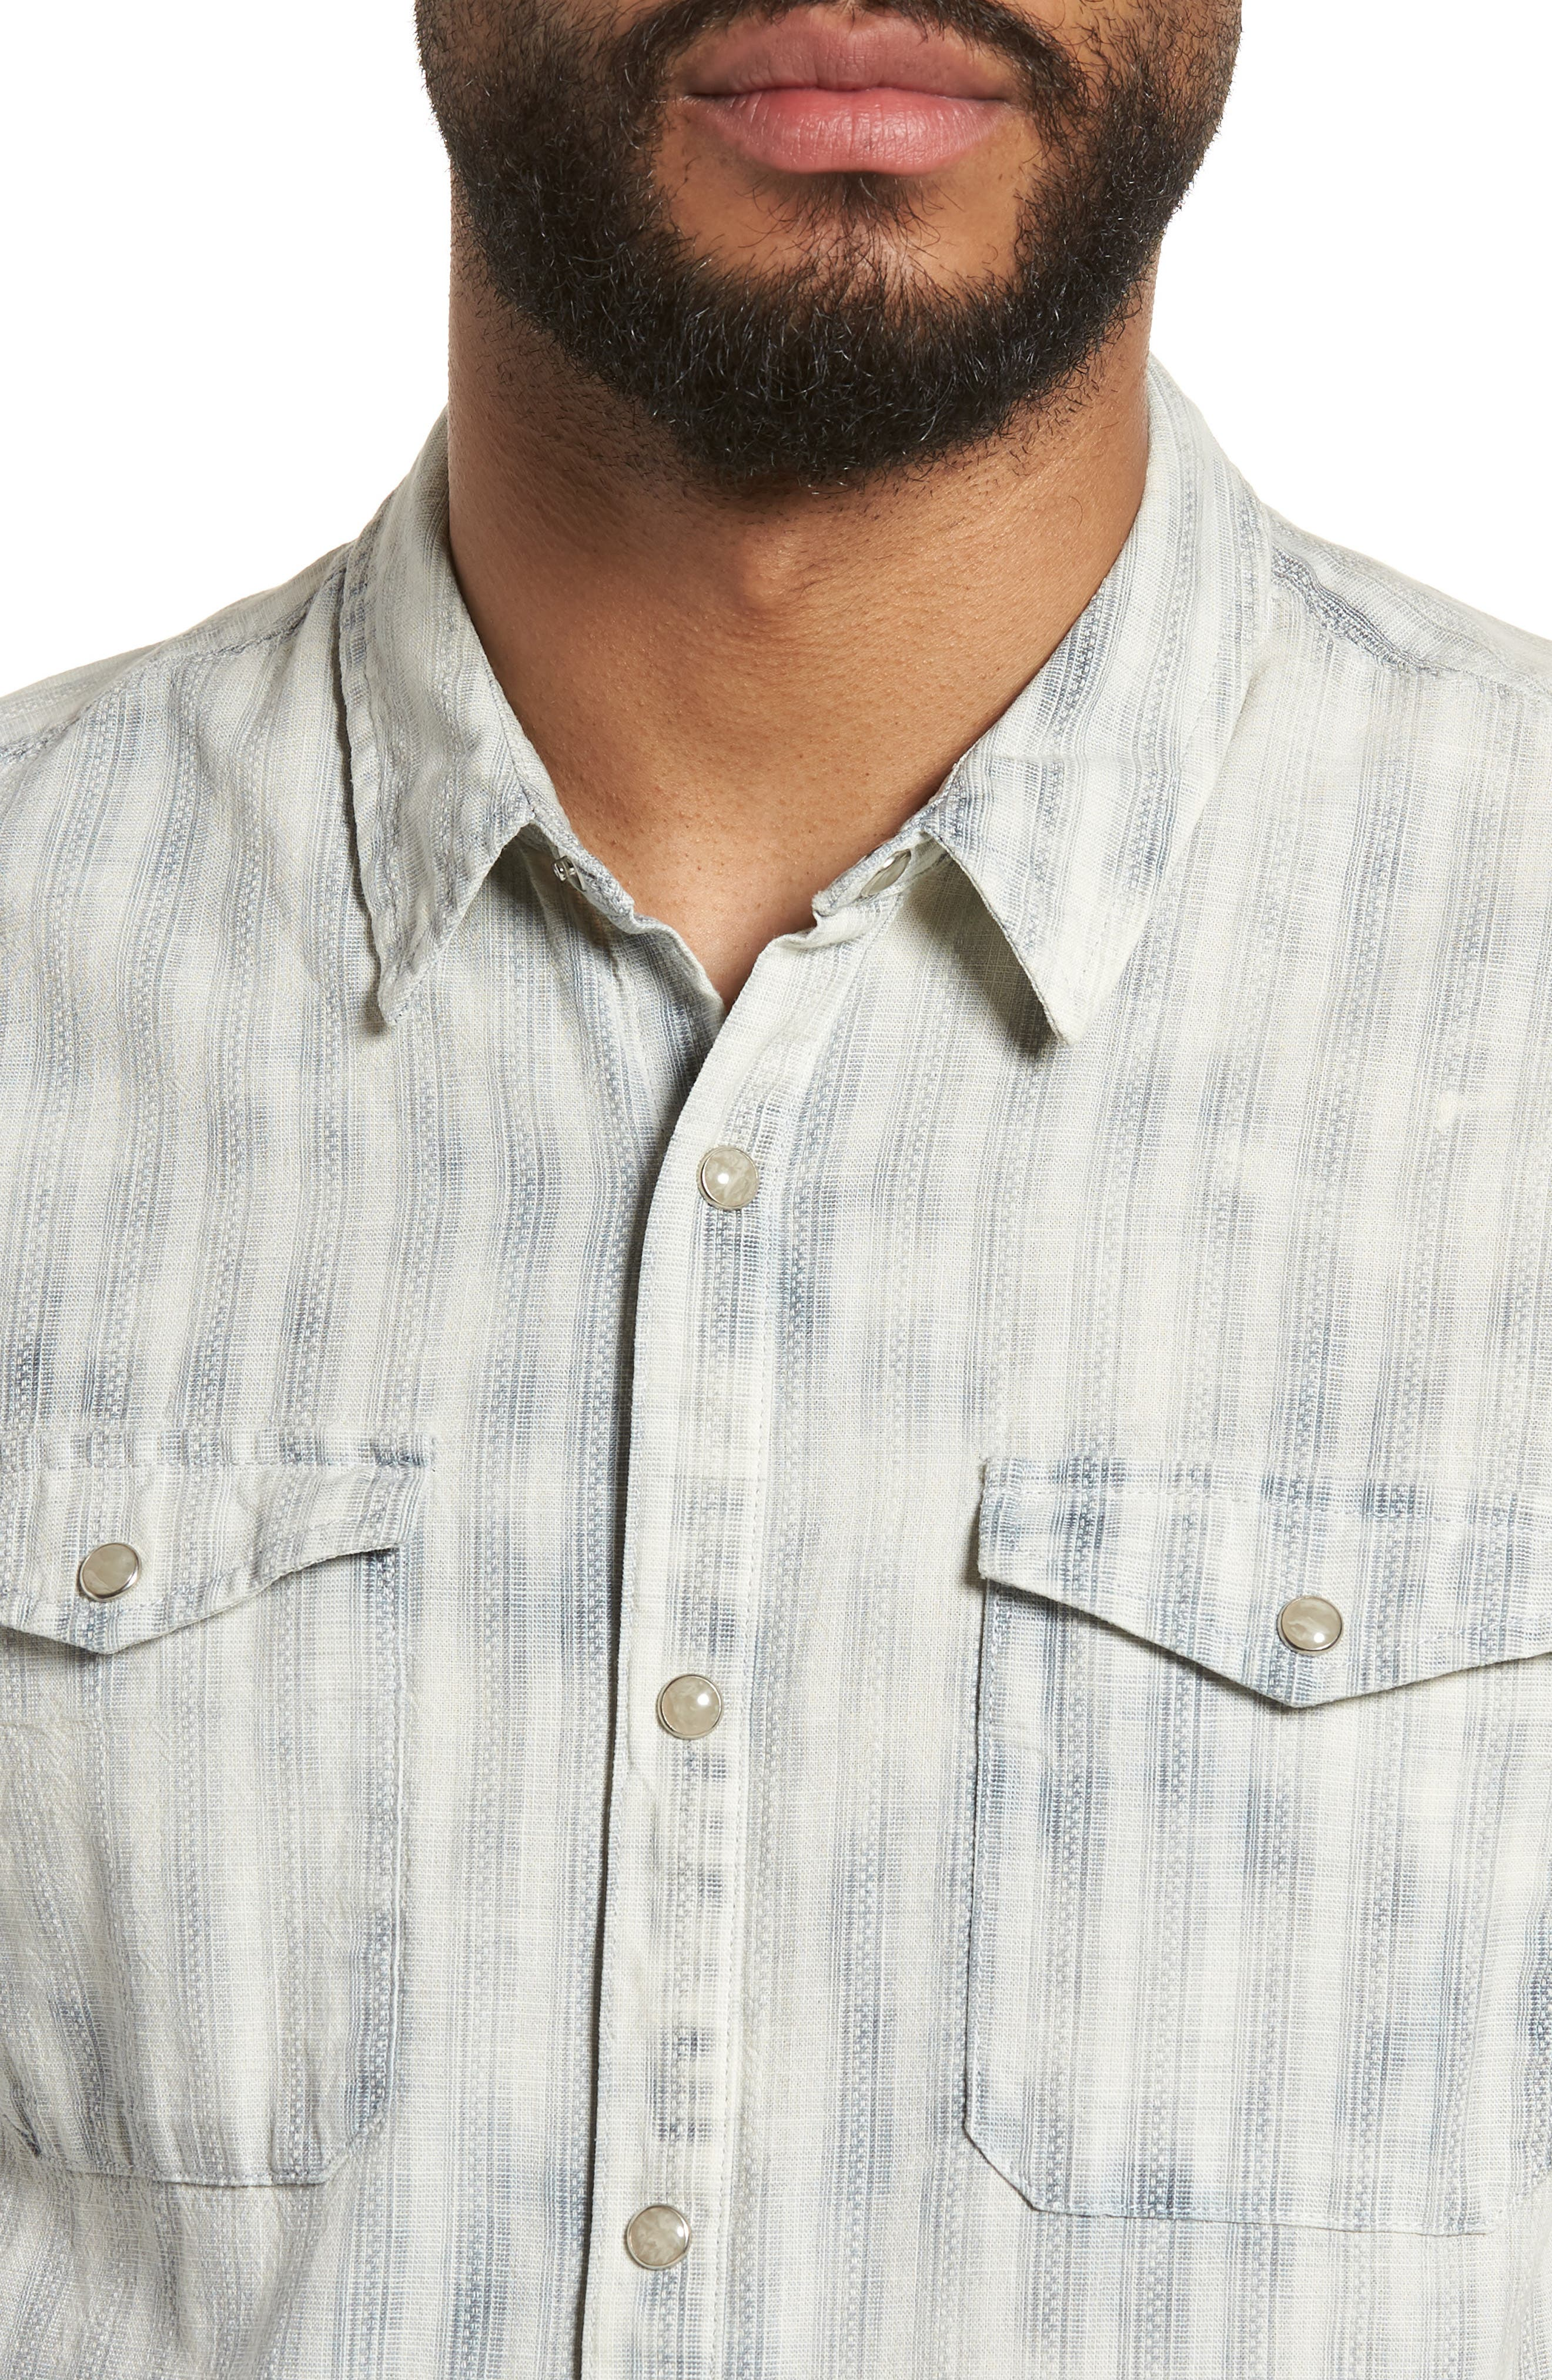 Extra Slim Fit Western Shirt,                             Alternate thumbnail 4, color,                             046